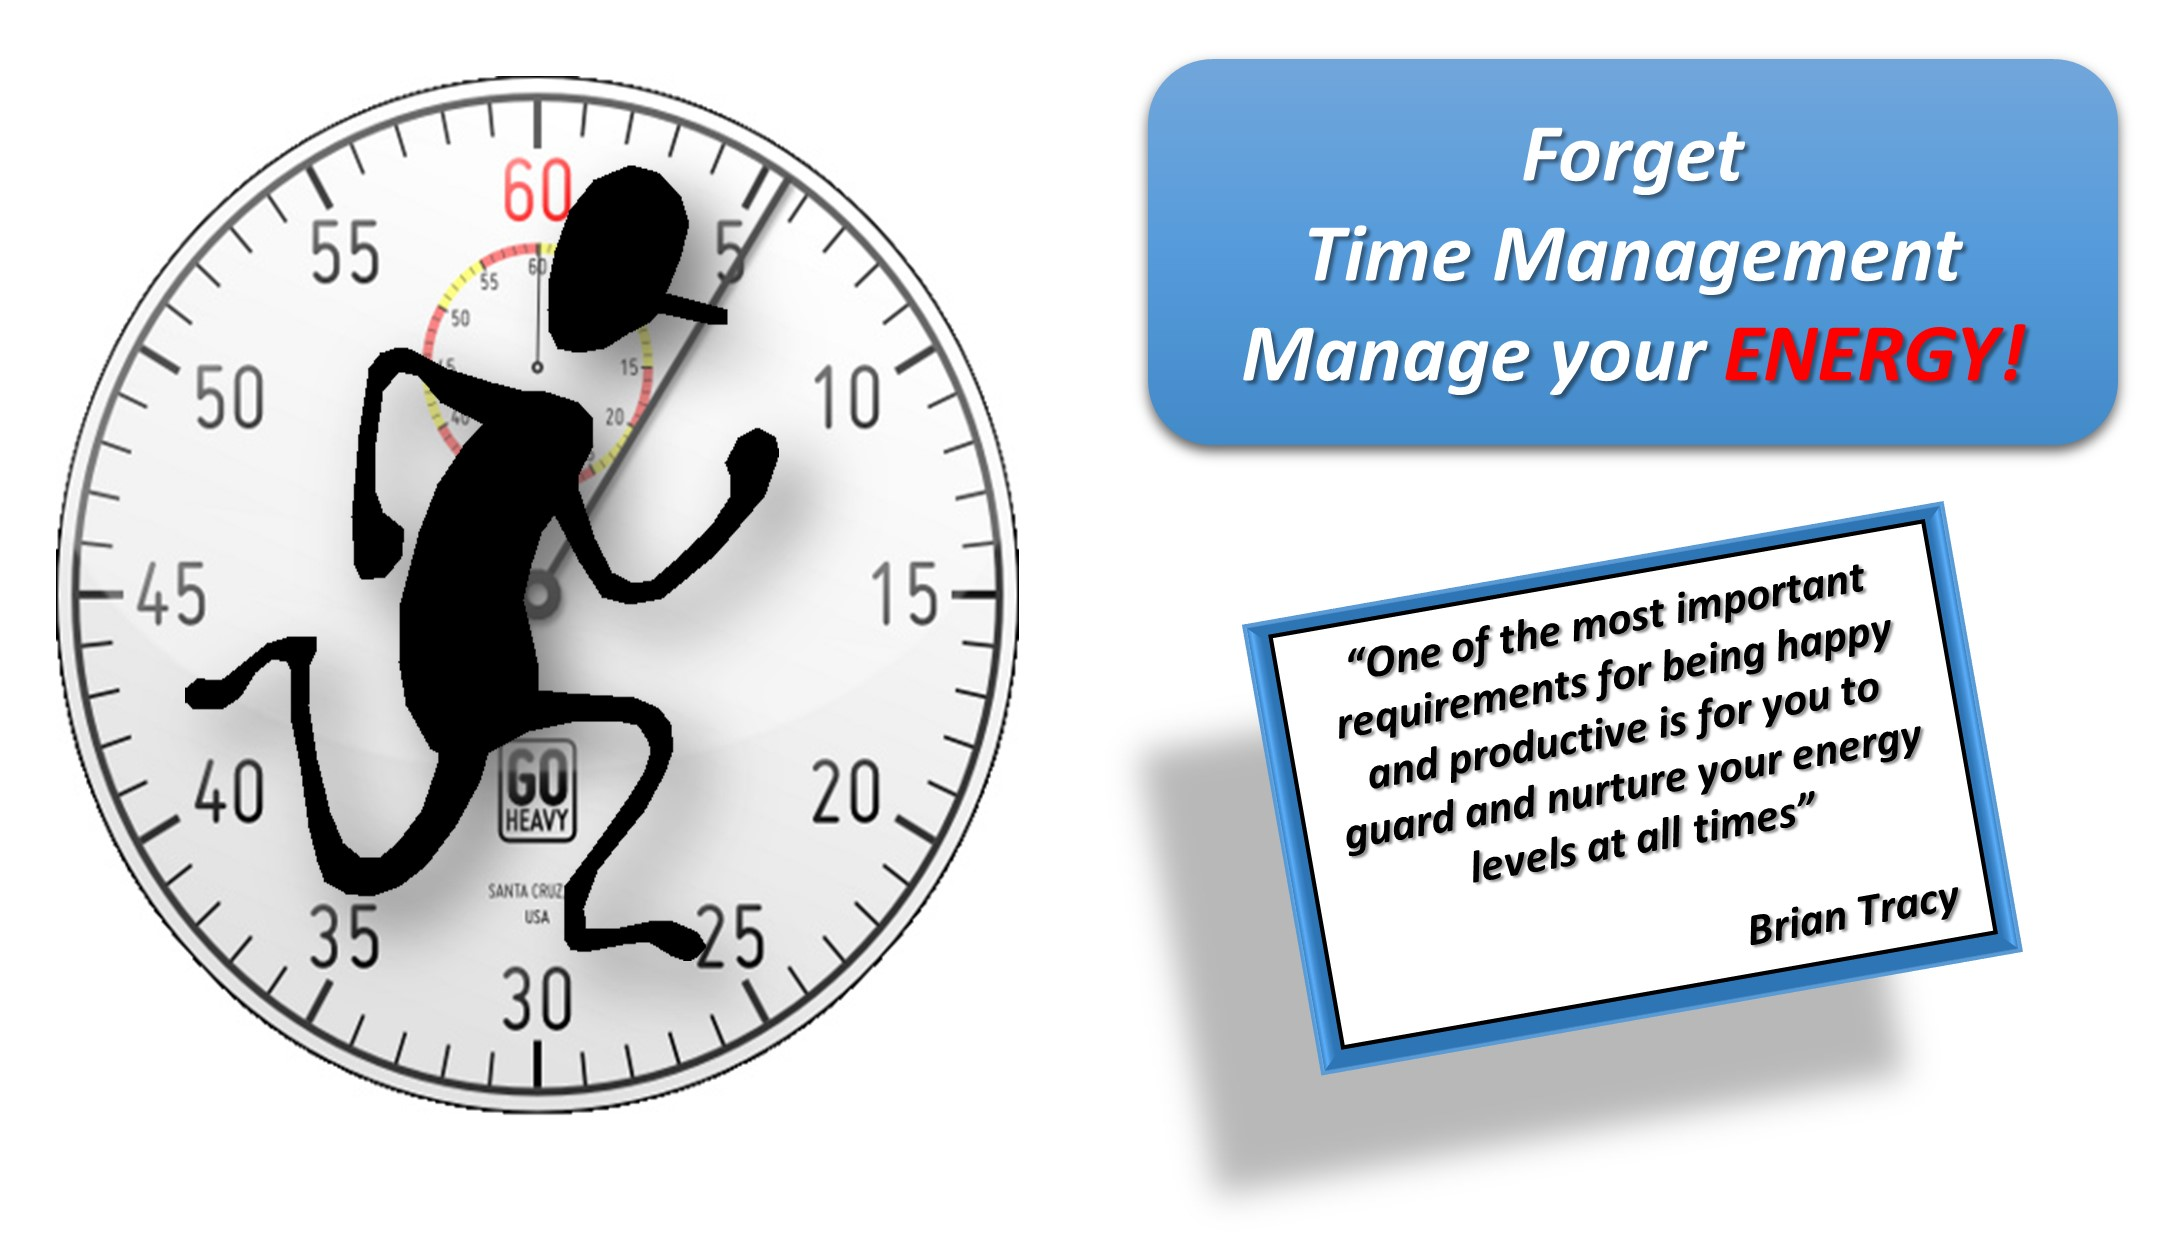 Forget Time Management – Manage your Energy